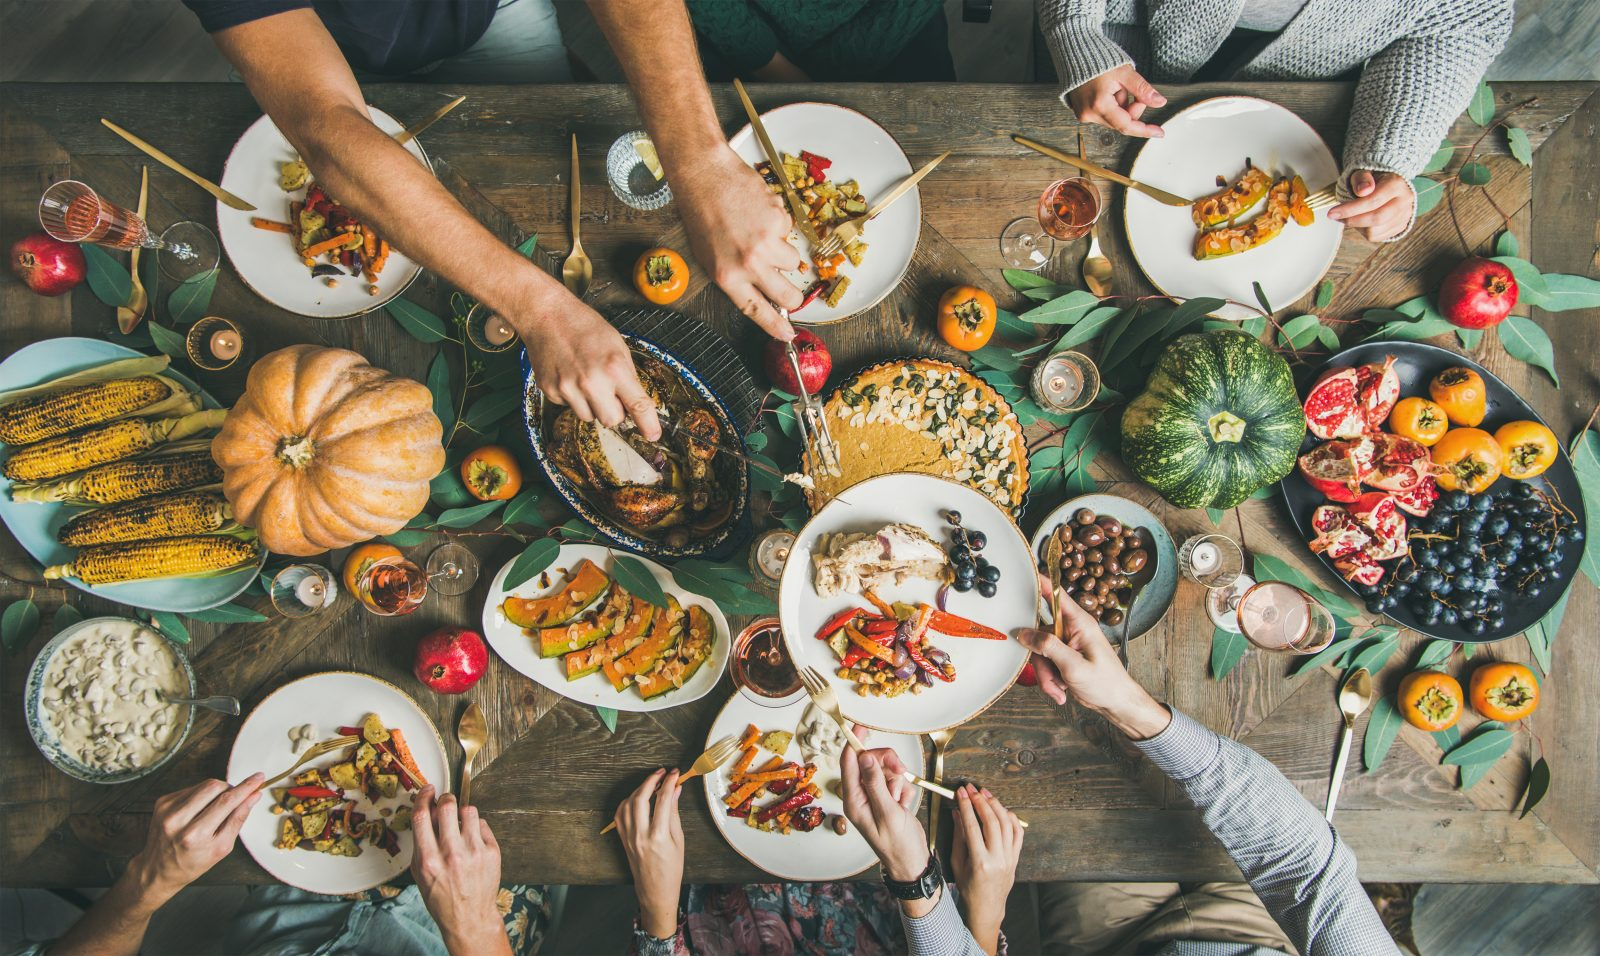 Food Safety Around The Holidays